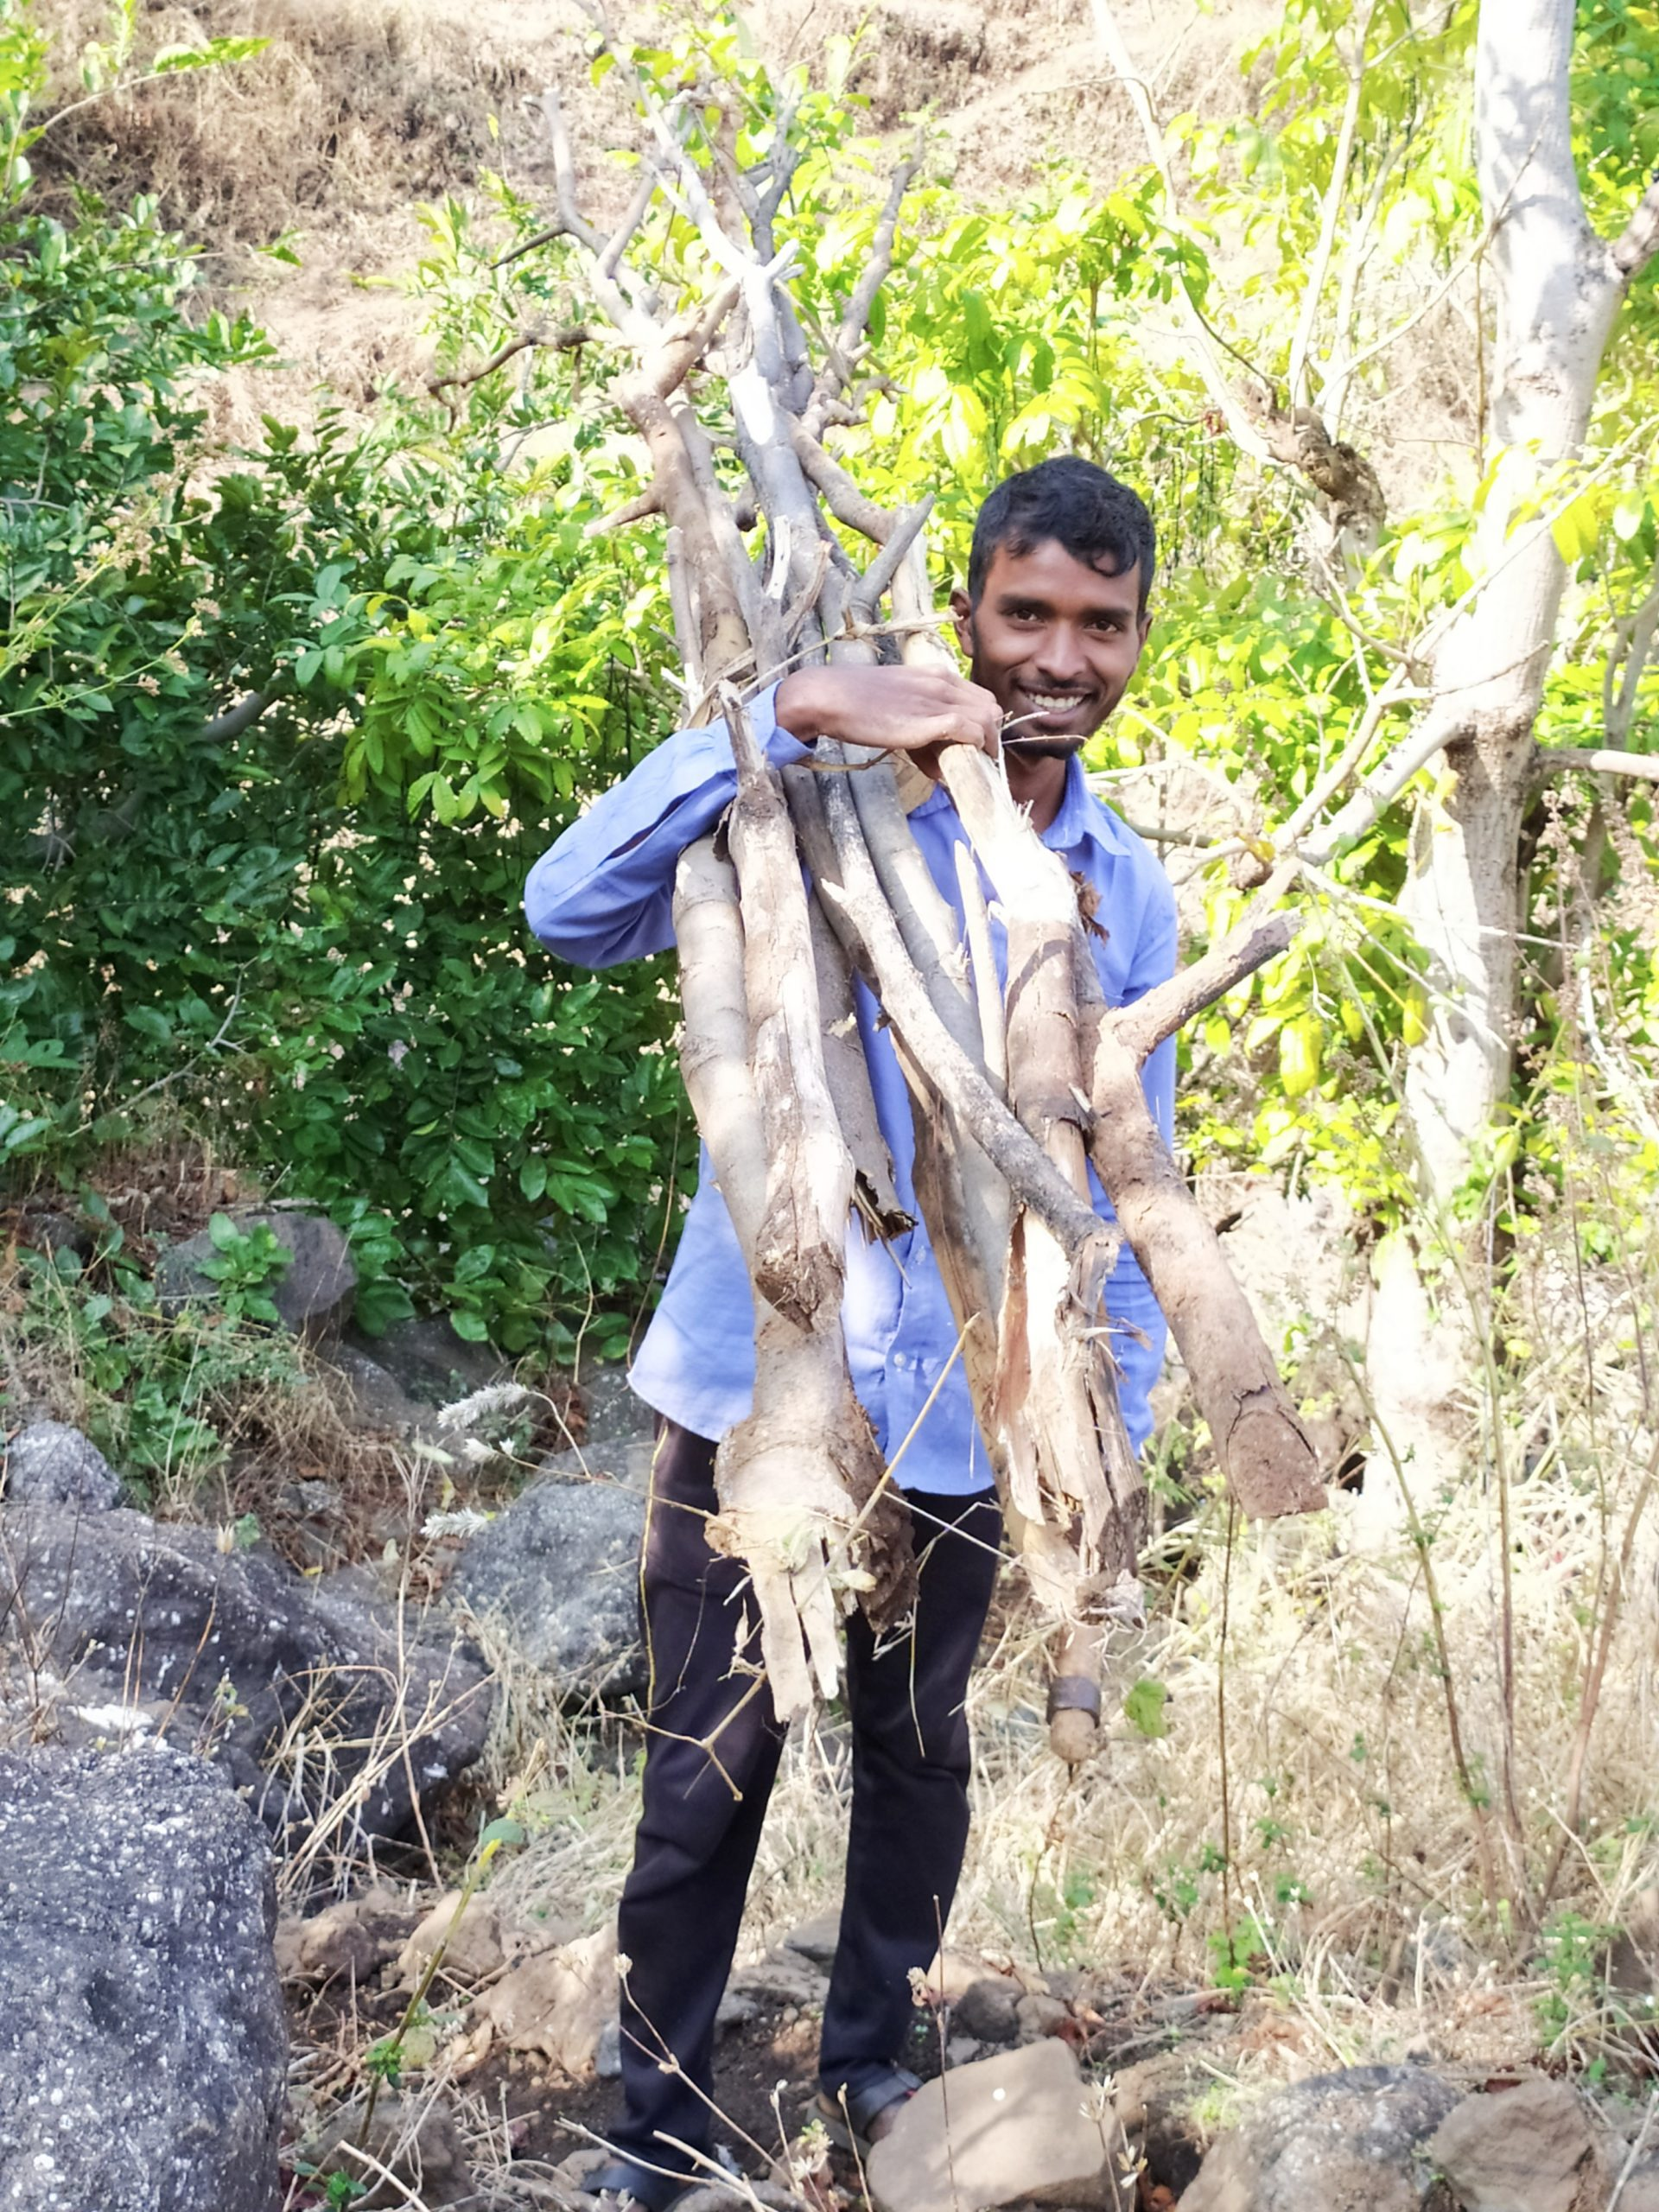 A village boy carrying woods